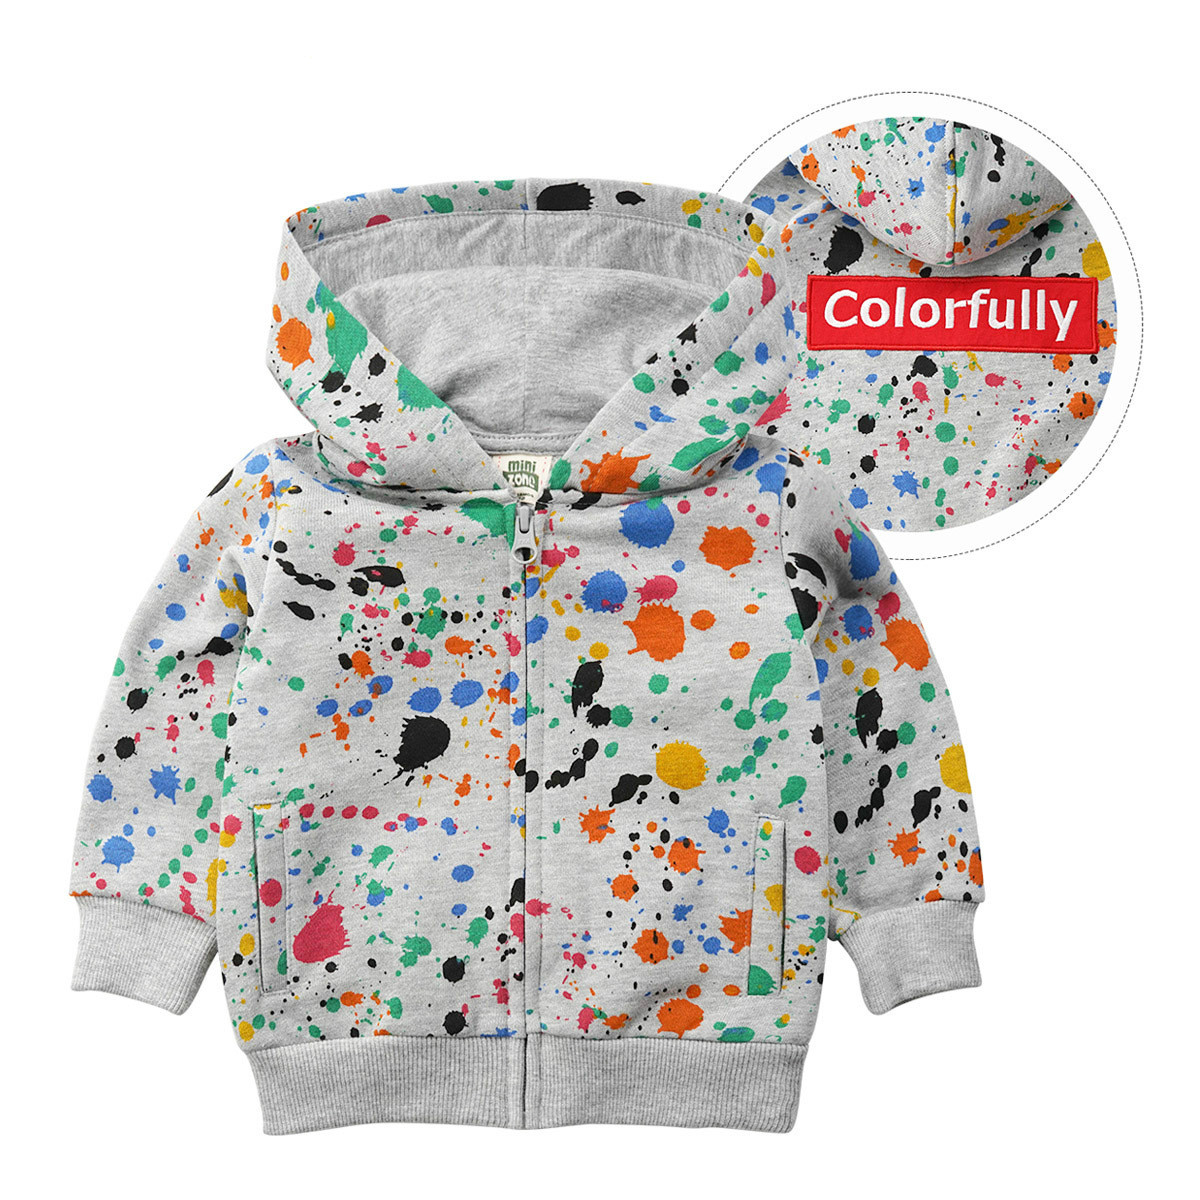 Fashion Outfit Boy And Girls Long Sleeves Coats Childrens Wear Clothes Jacket Spring And Autumn Hooded Coat Zipper Baby Blouse